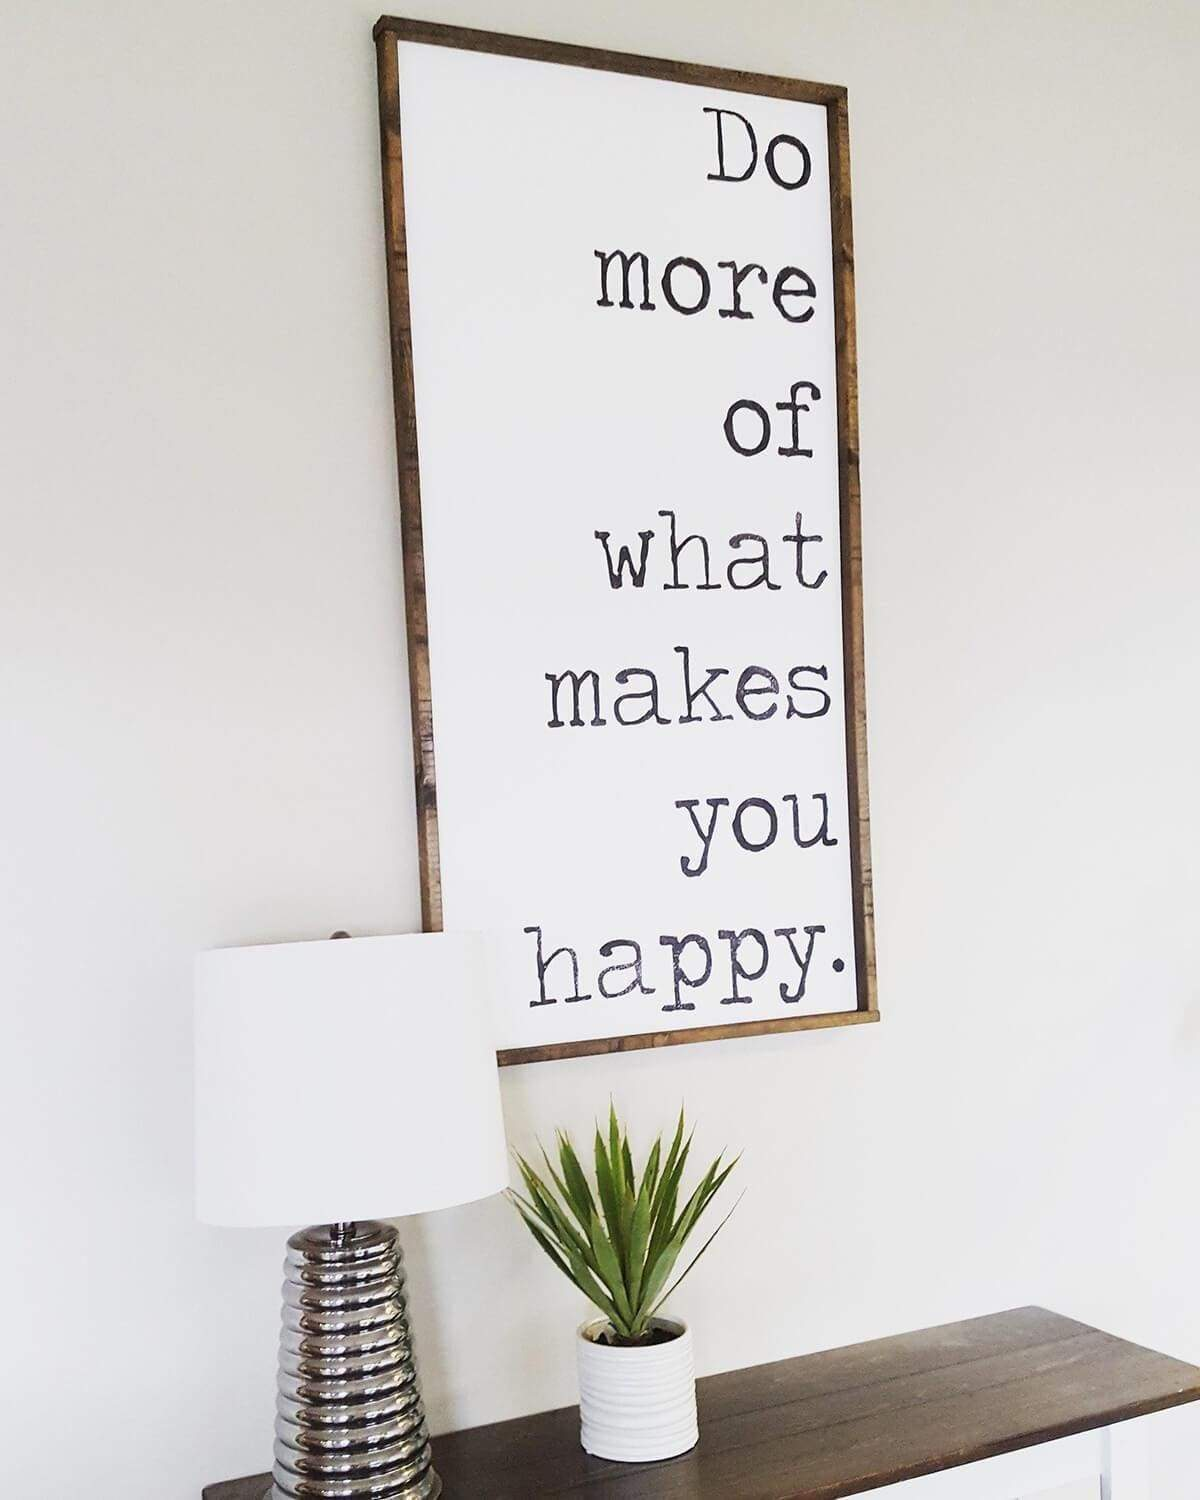 "They've created a wonderful sign with plain text in a typewriter font design. A great reminder to ""Do more of what makes you happy."" The simple shelf below holds a mirror-based lamp and simple small greenery pot."